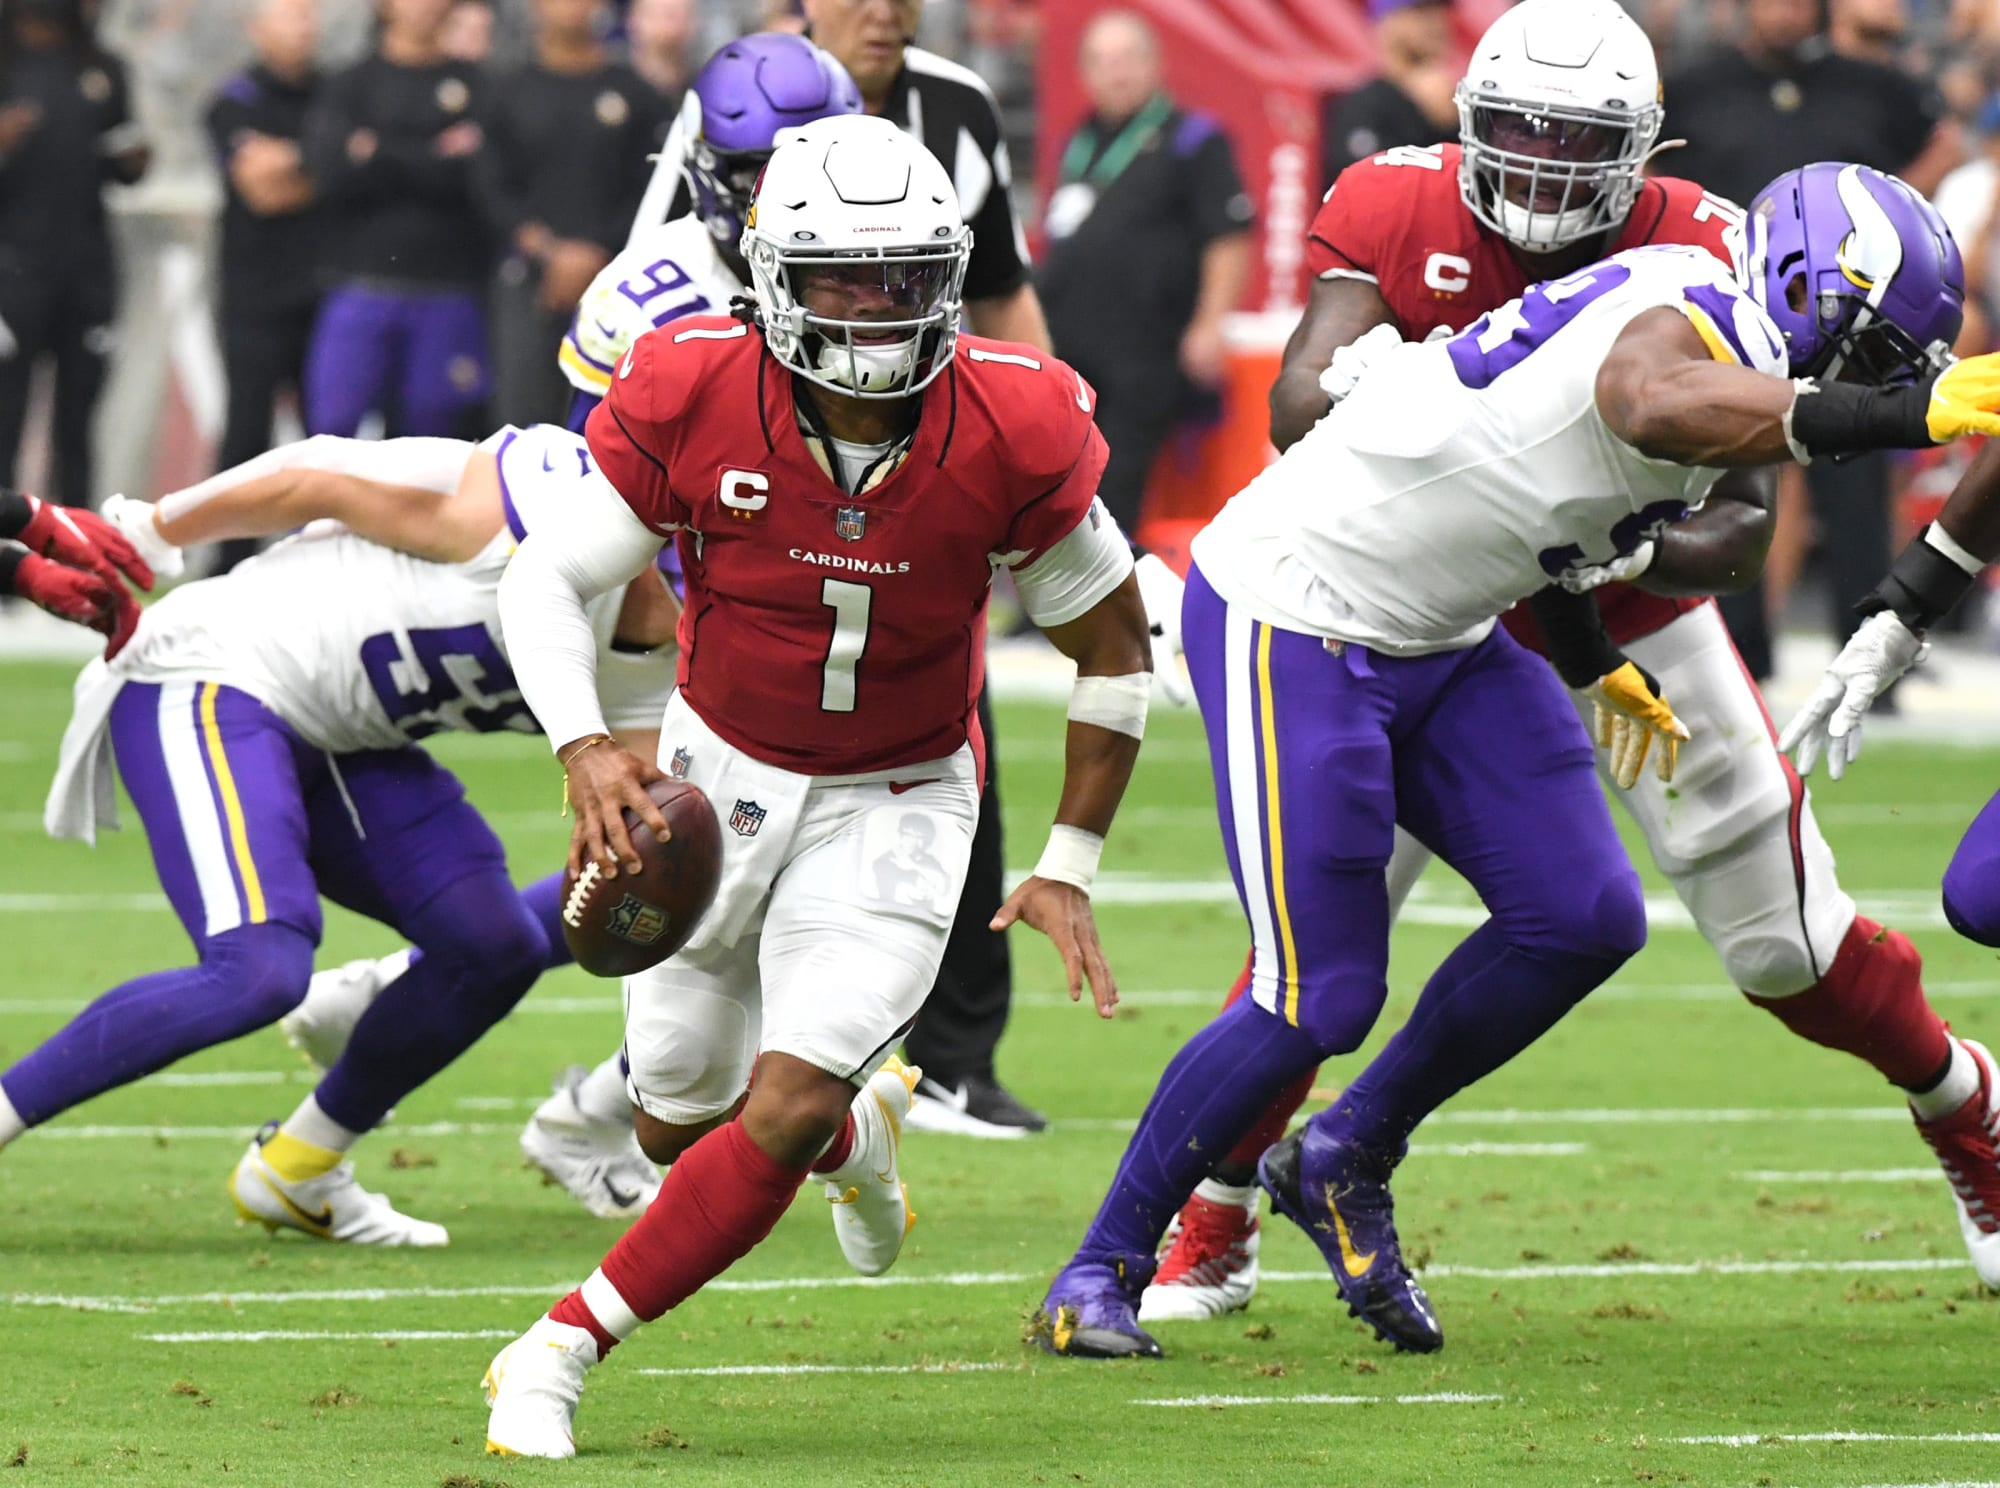 Cardinals get lucky to stay undefeated, beat Vikings 34-33